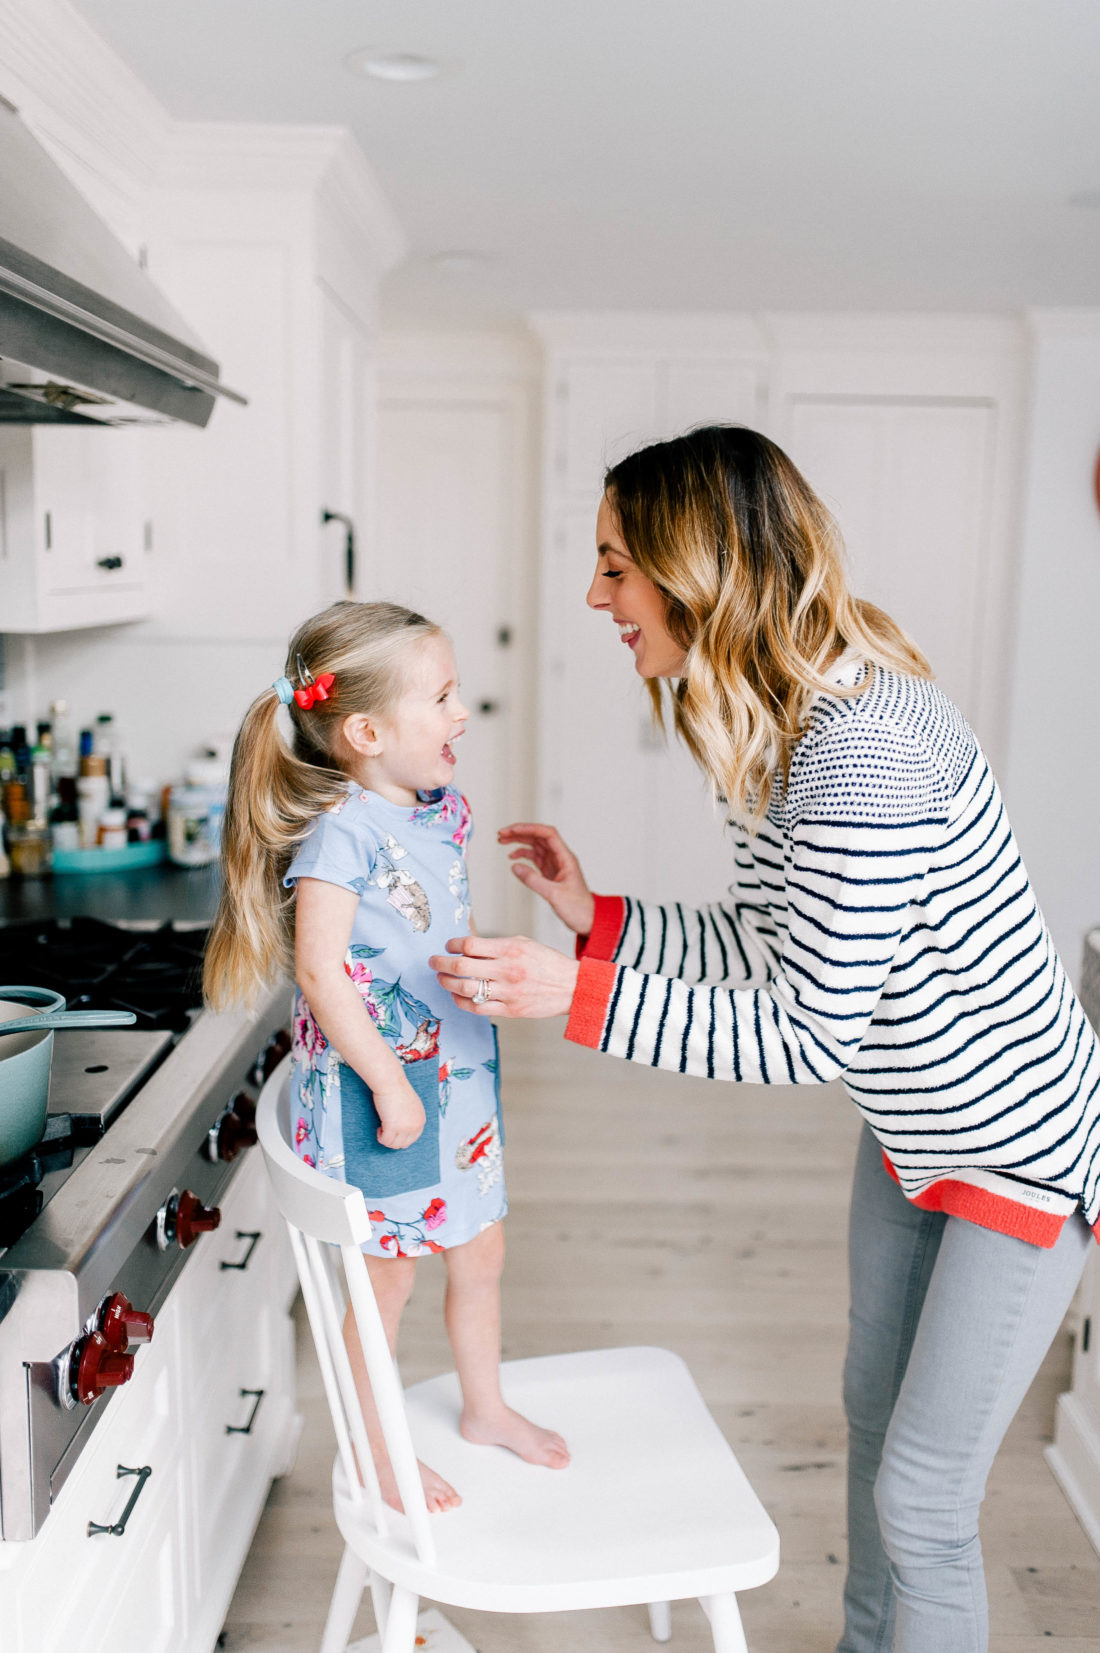 Eva Martino tickles Marlowe in the kitchen of their Connecticut home